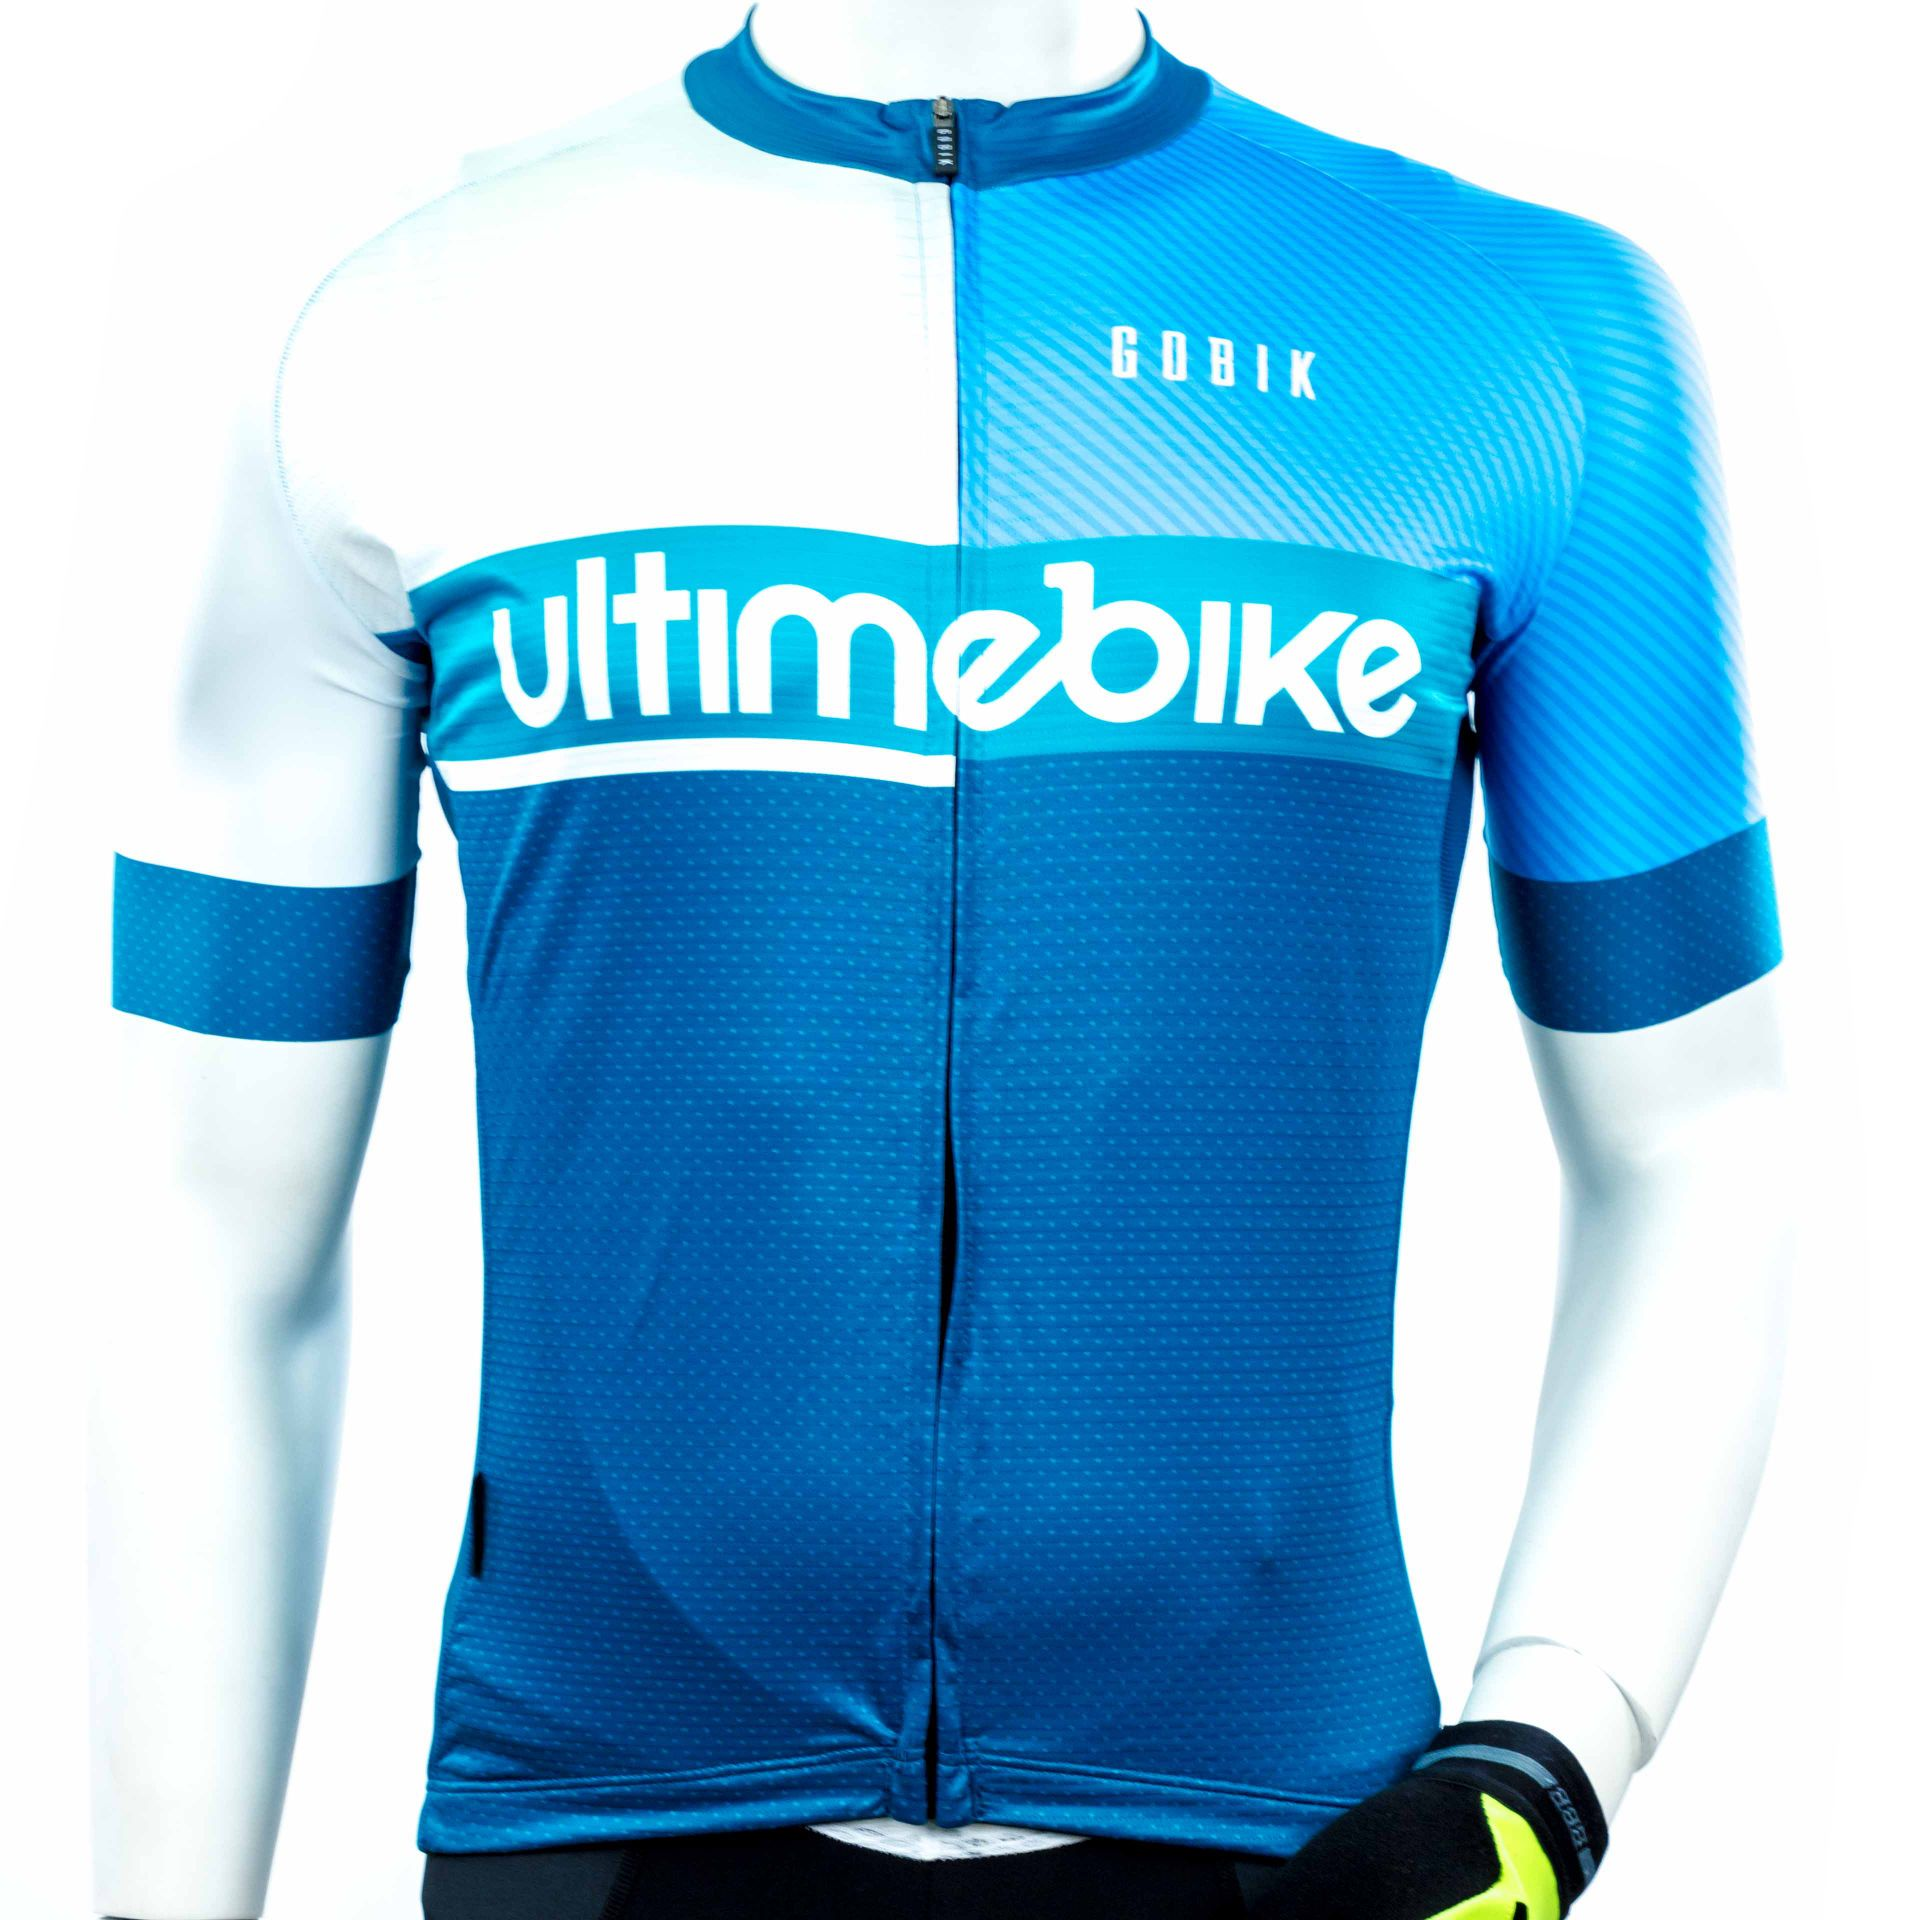 Maillot Ultime Bike Rocket by Gobik Manches courtes - S